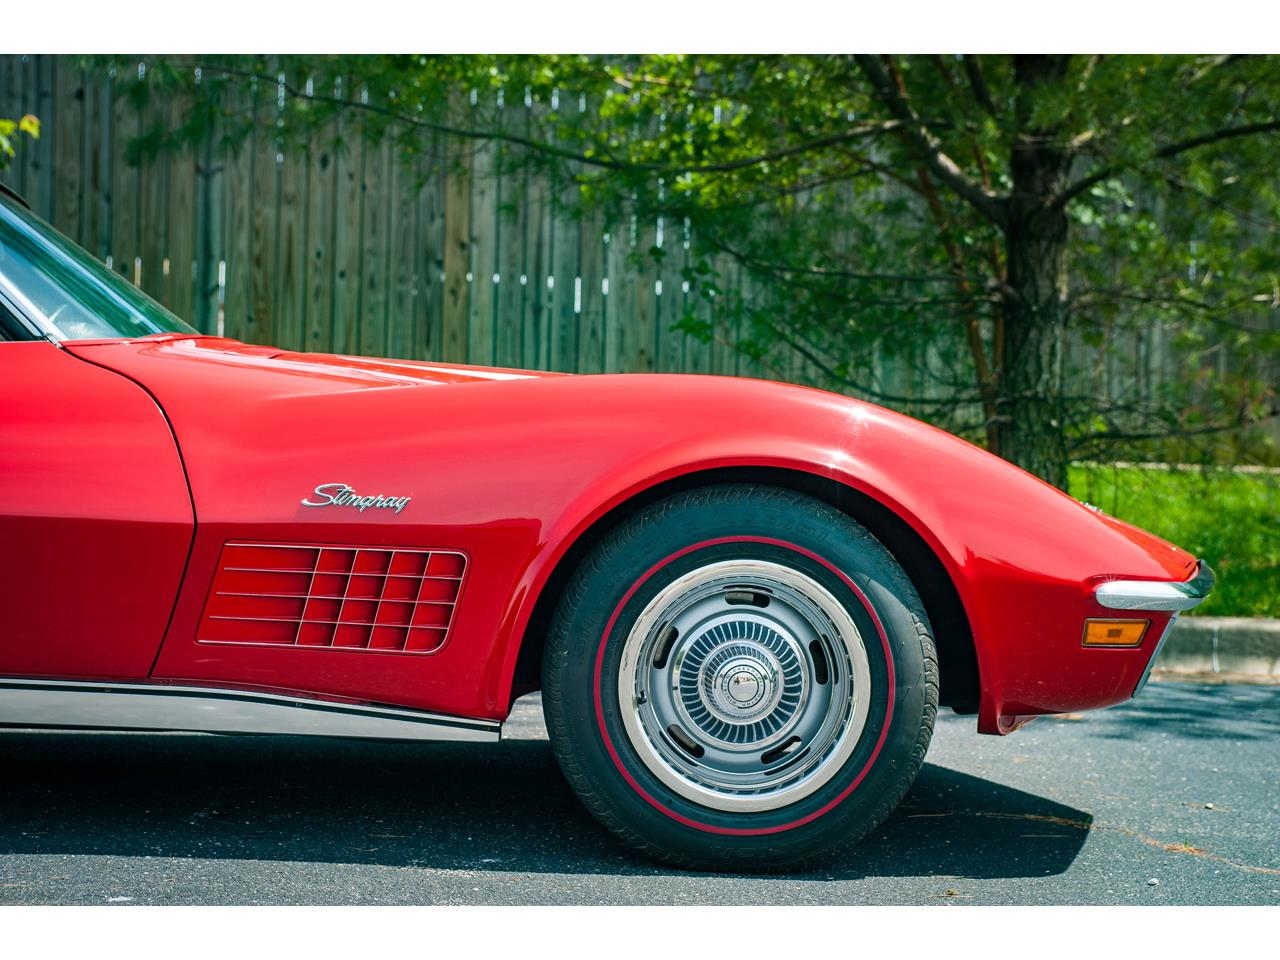 Large Picture of Classic '71 Chevrolet Corvette located in O'Fallon Illinois Offered by Gateway Classic Cars - St. Louis - QB9M